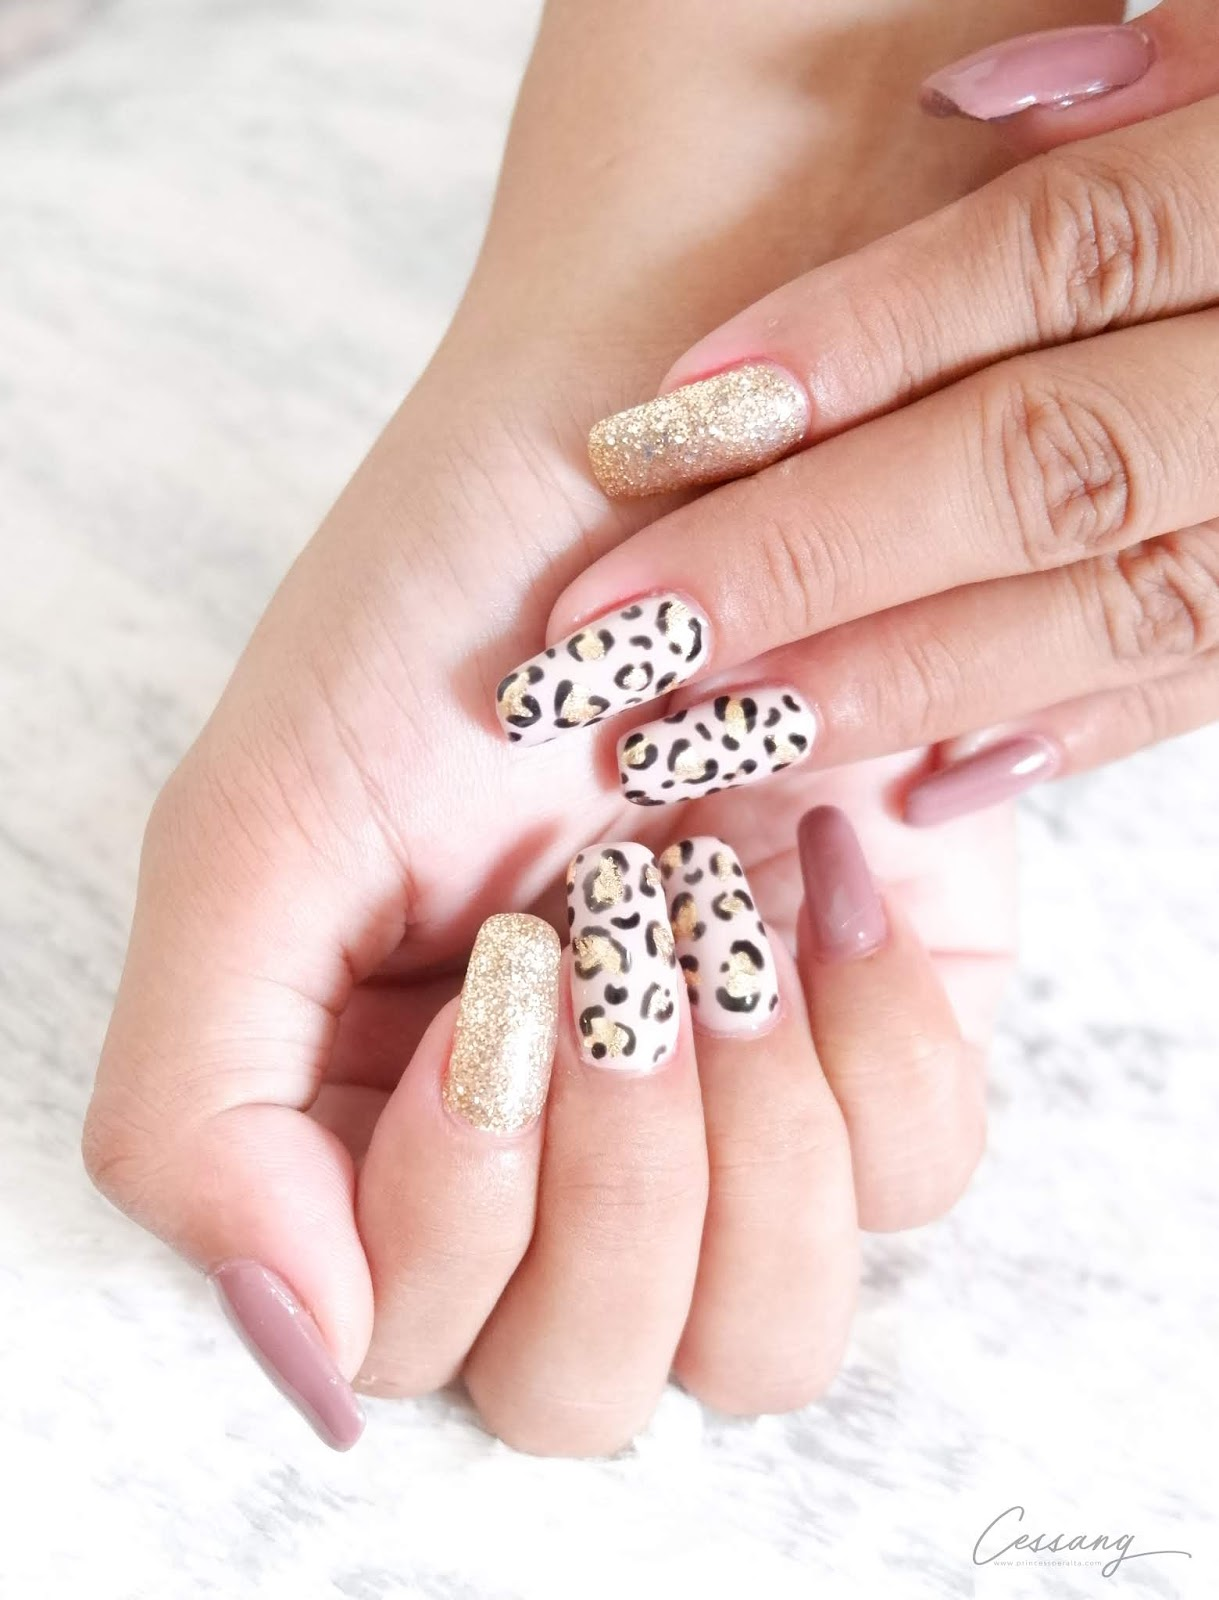 CESSANG NAIL ART COLLECTION - GOLD & BLACK LEOPARD GEL MANICURE